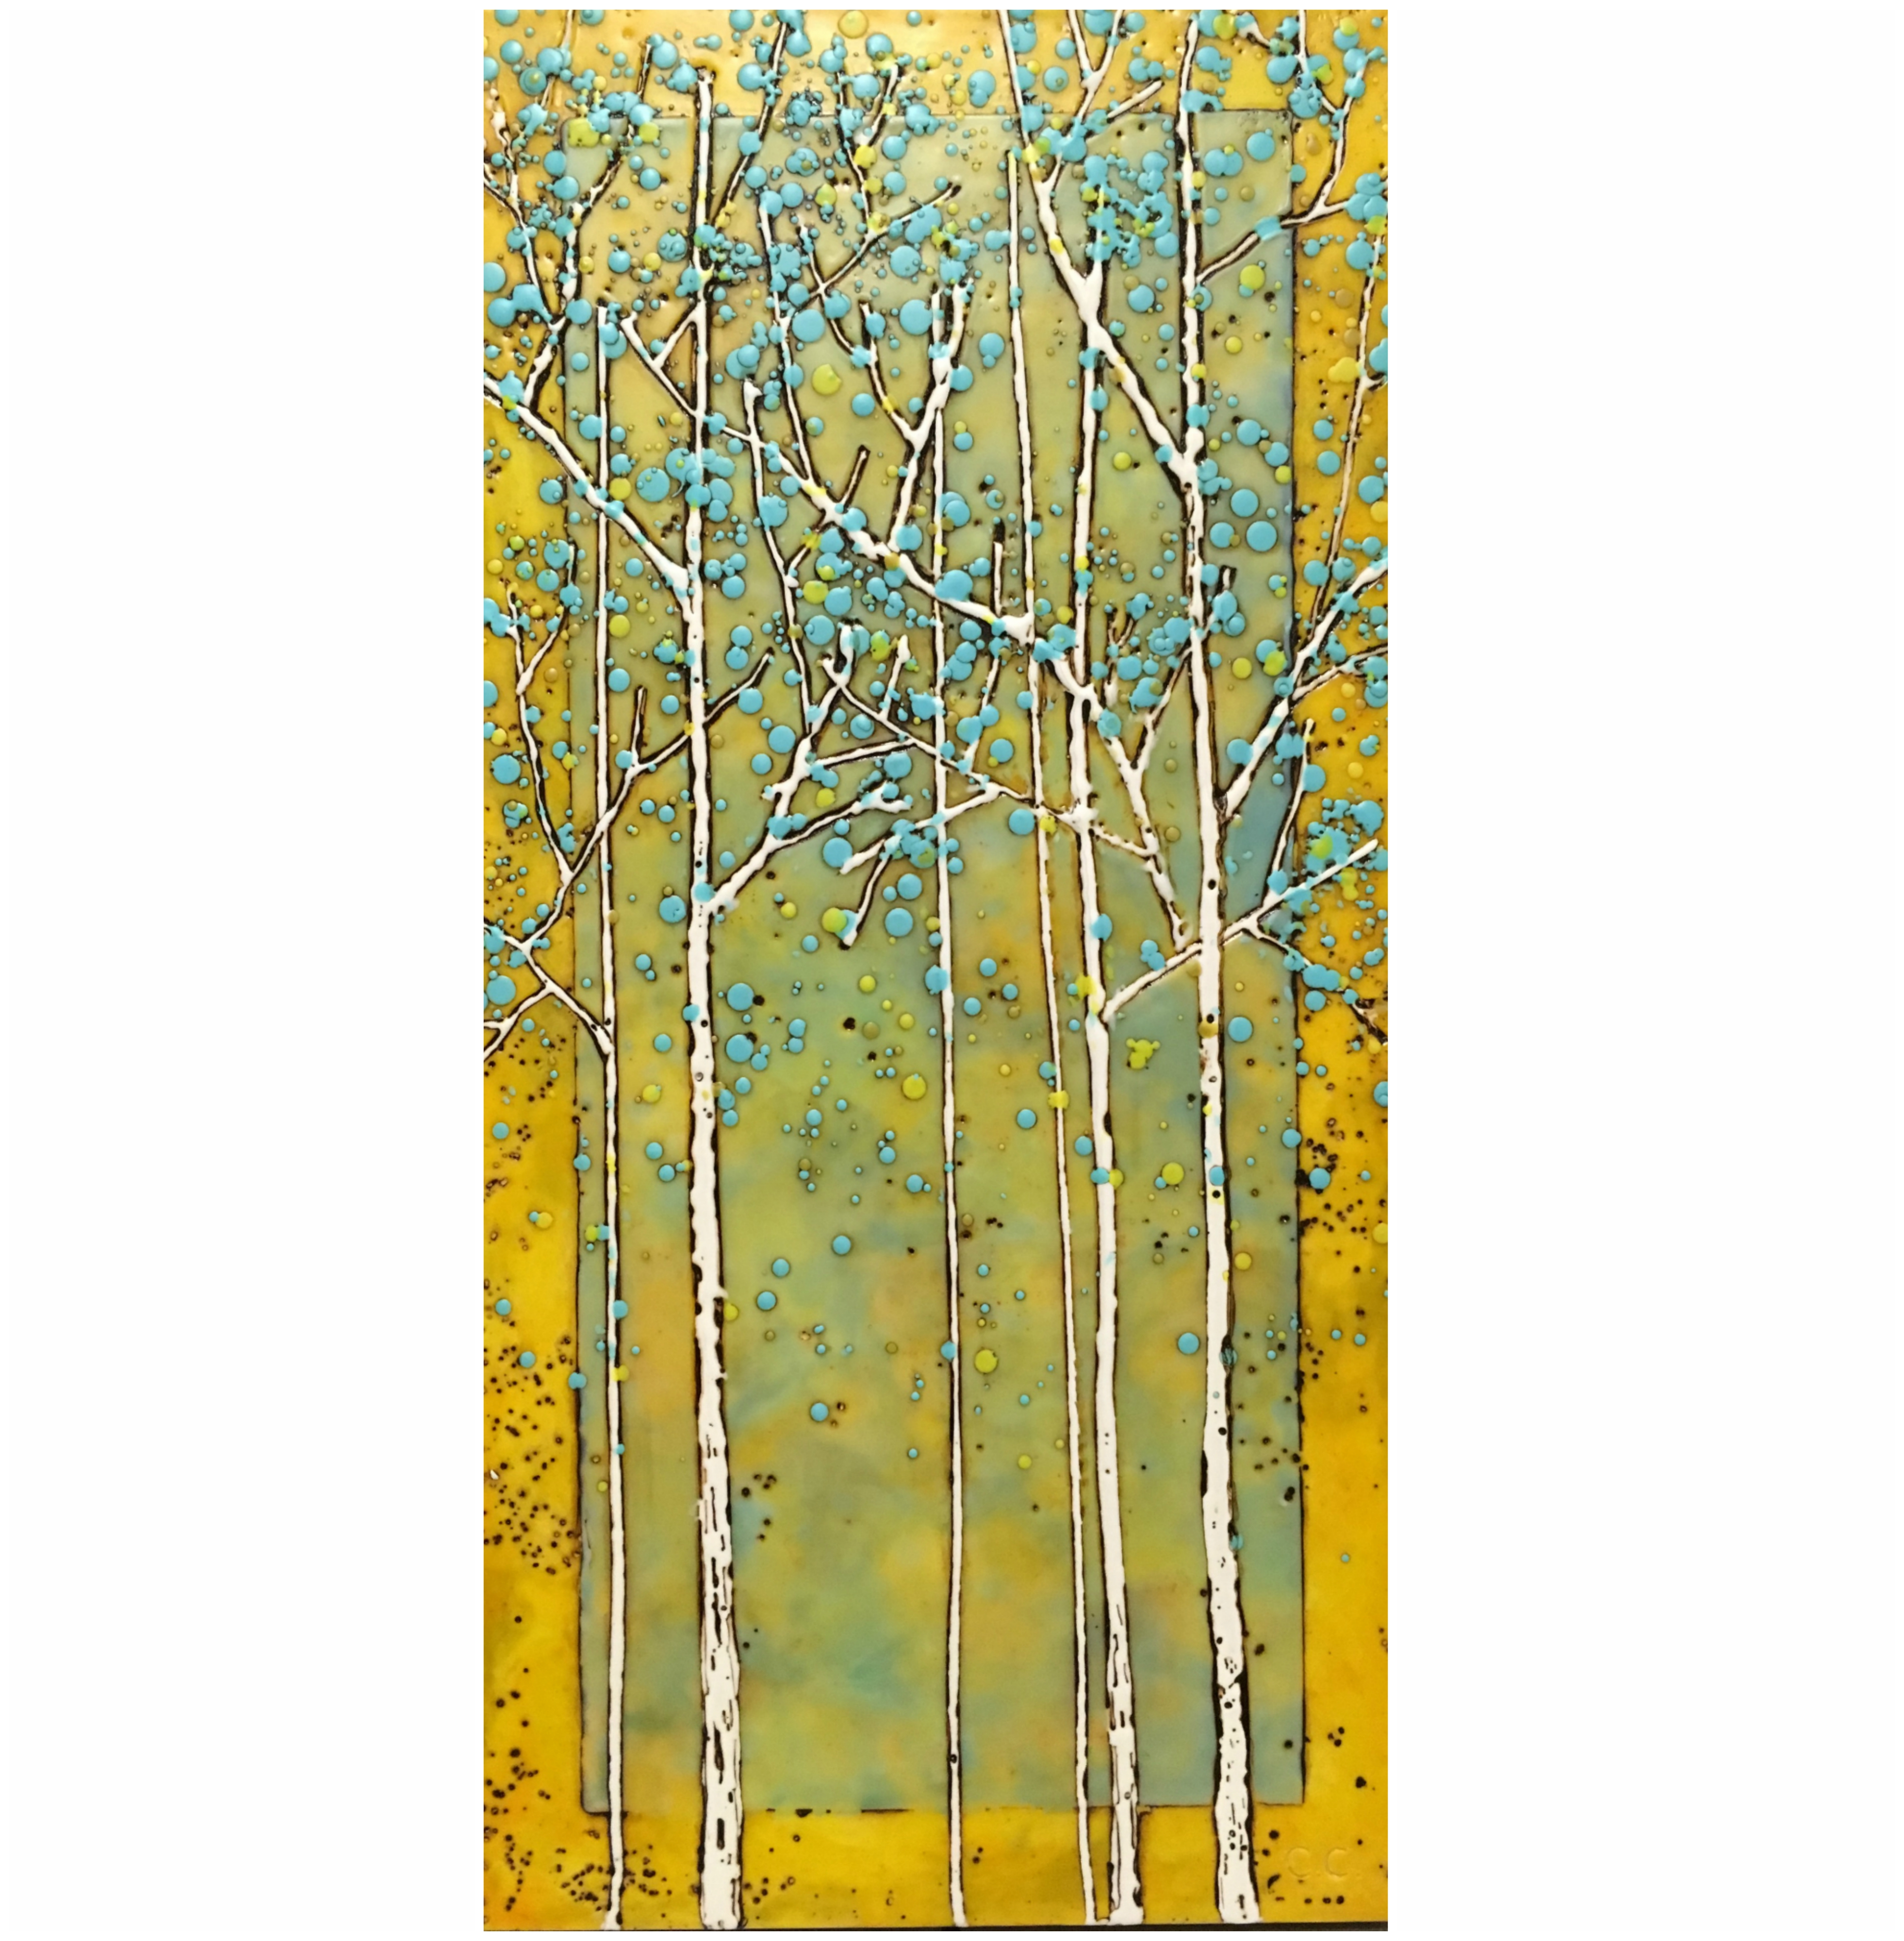 She Made it Happen, encaustic tree painting by Catharine Clarke | Effusion Art Gallery + Cast Glass Studio, Invermere BC